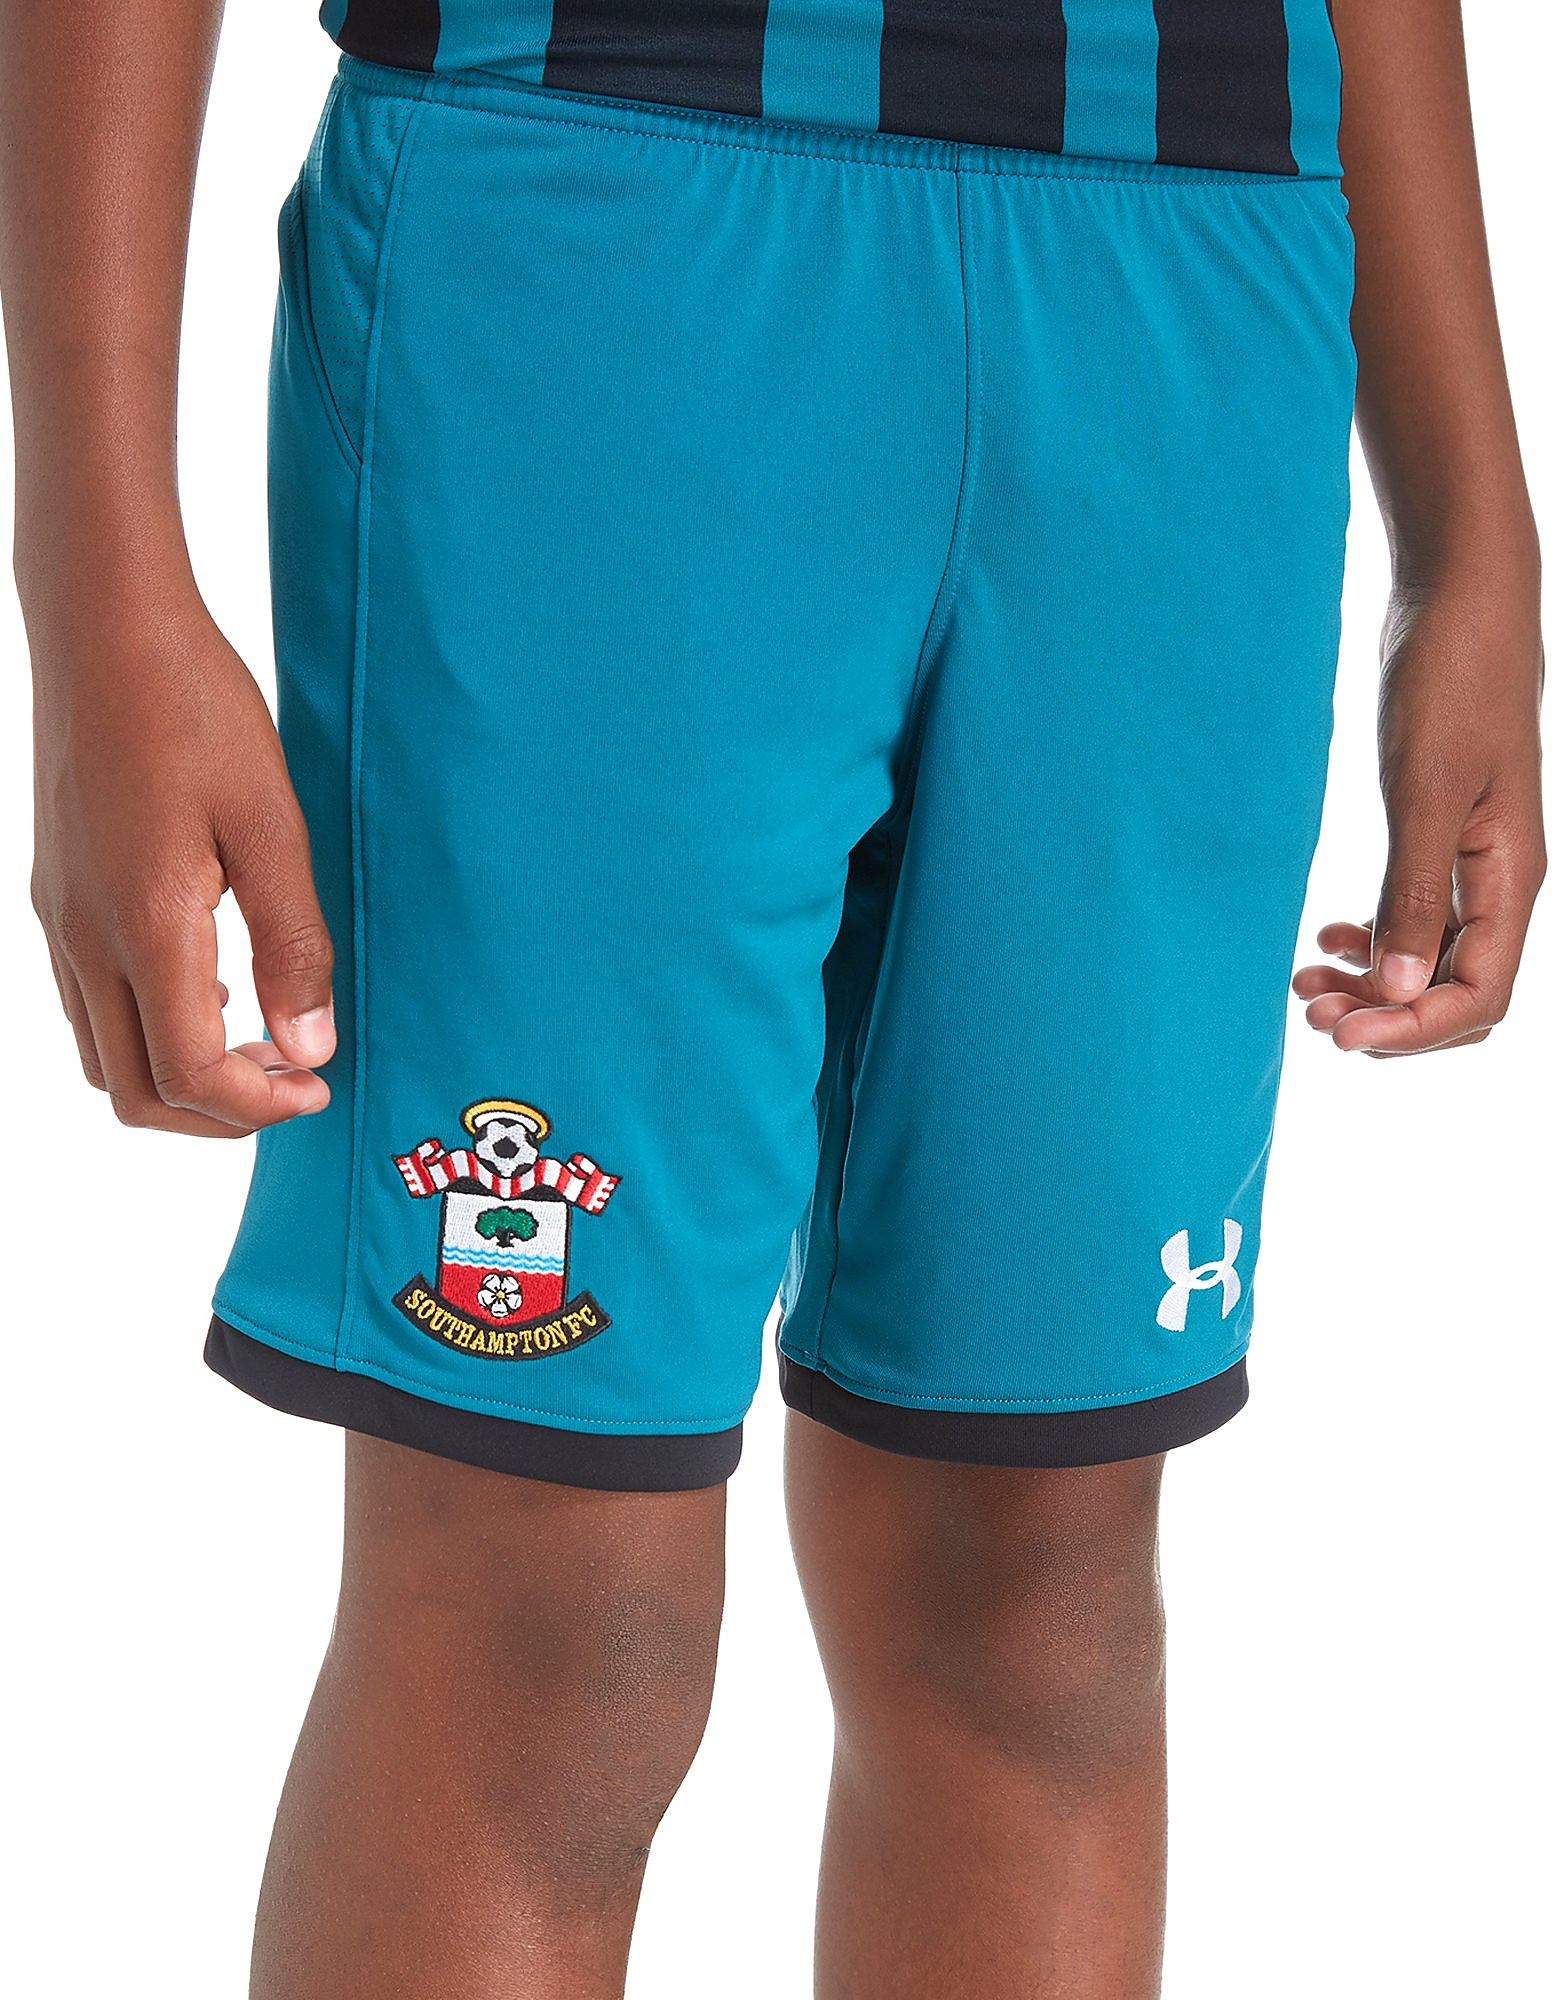 Under Armour Southampton FC 2017/18 Away Shorts Jnr